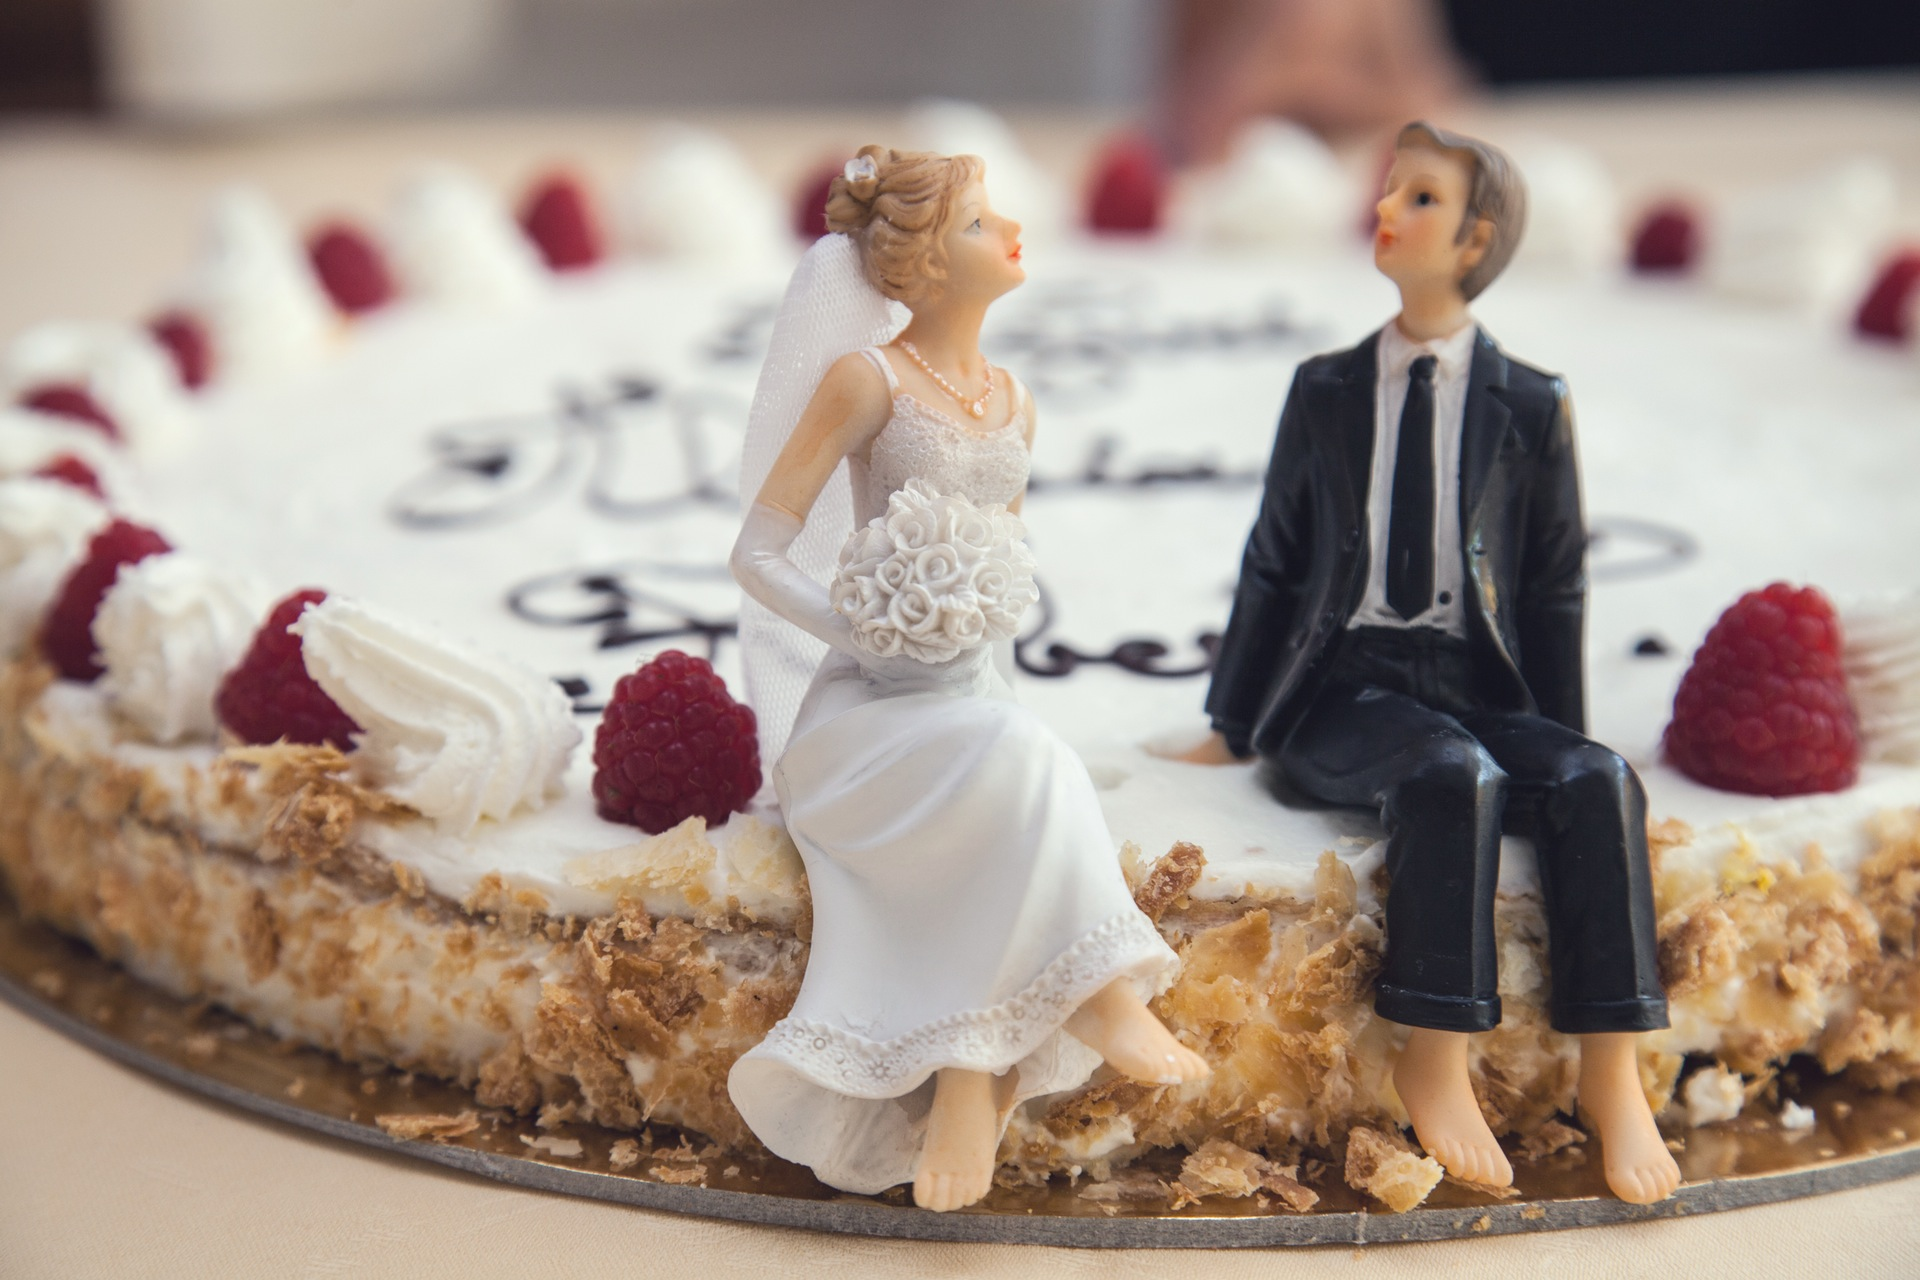 The Best Wedding Cake Makers in Bath - So you can have your cake and eat it